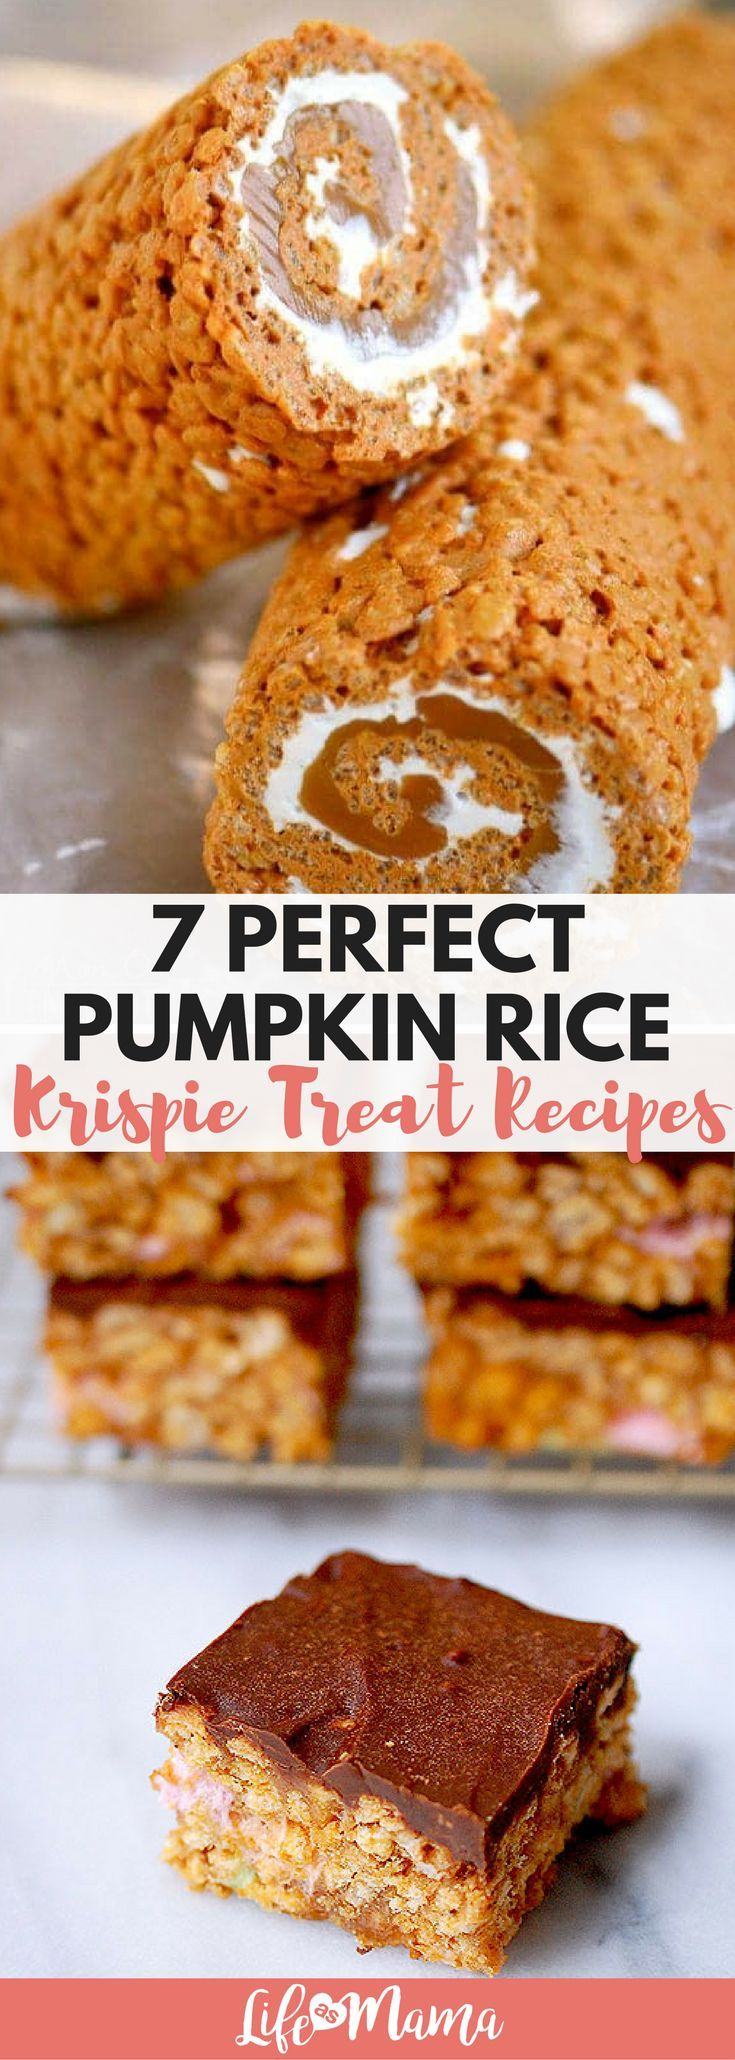 These pumpkin rice krispie treats all look delicious!! Can't wait for real Fall weather!